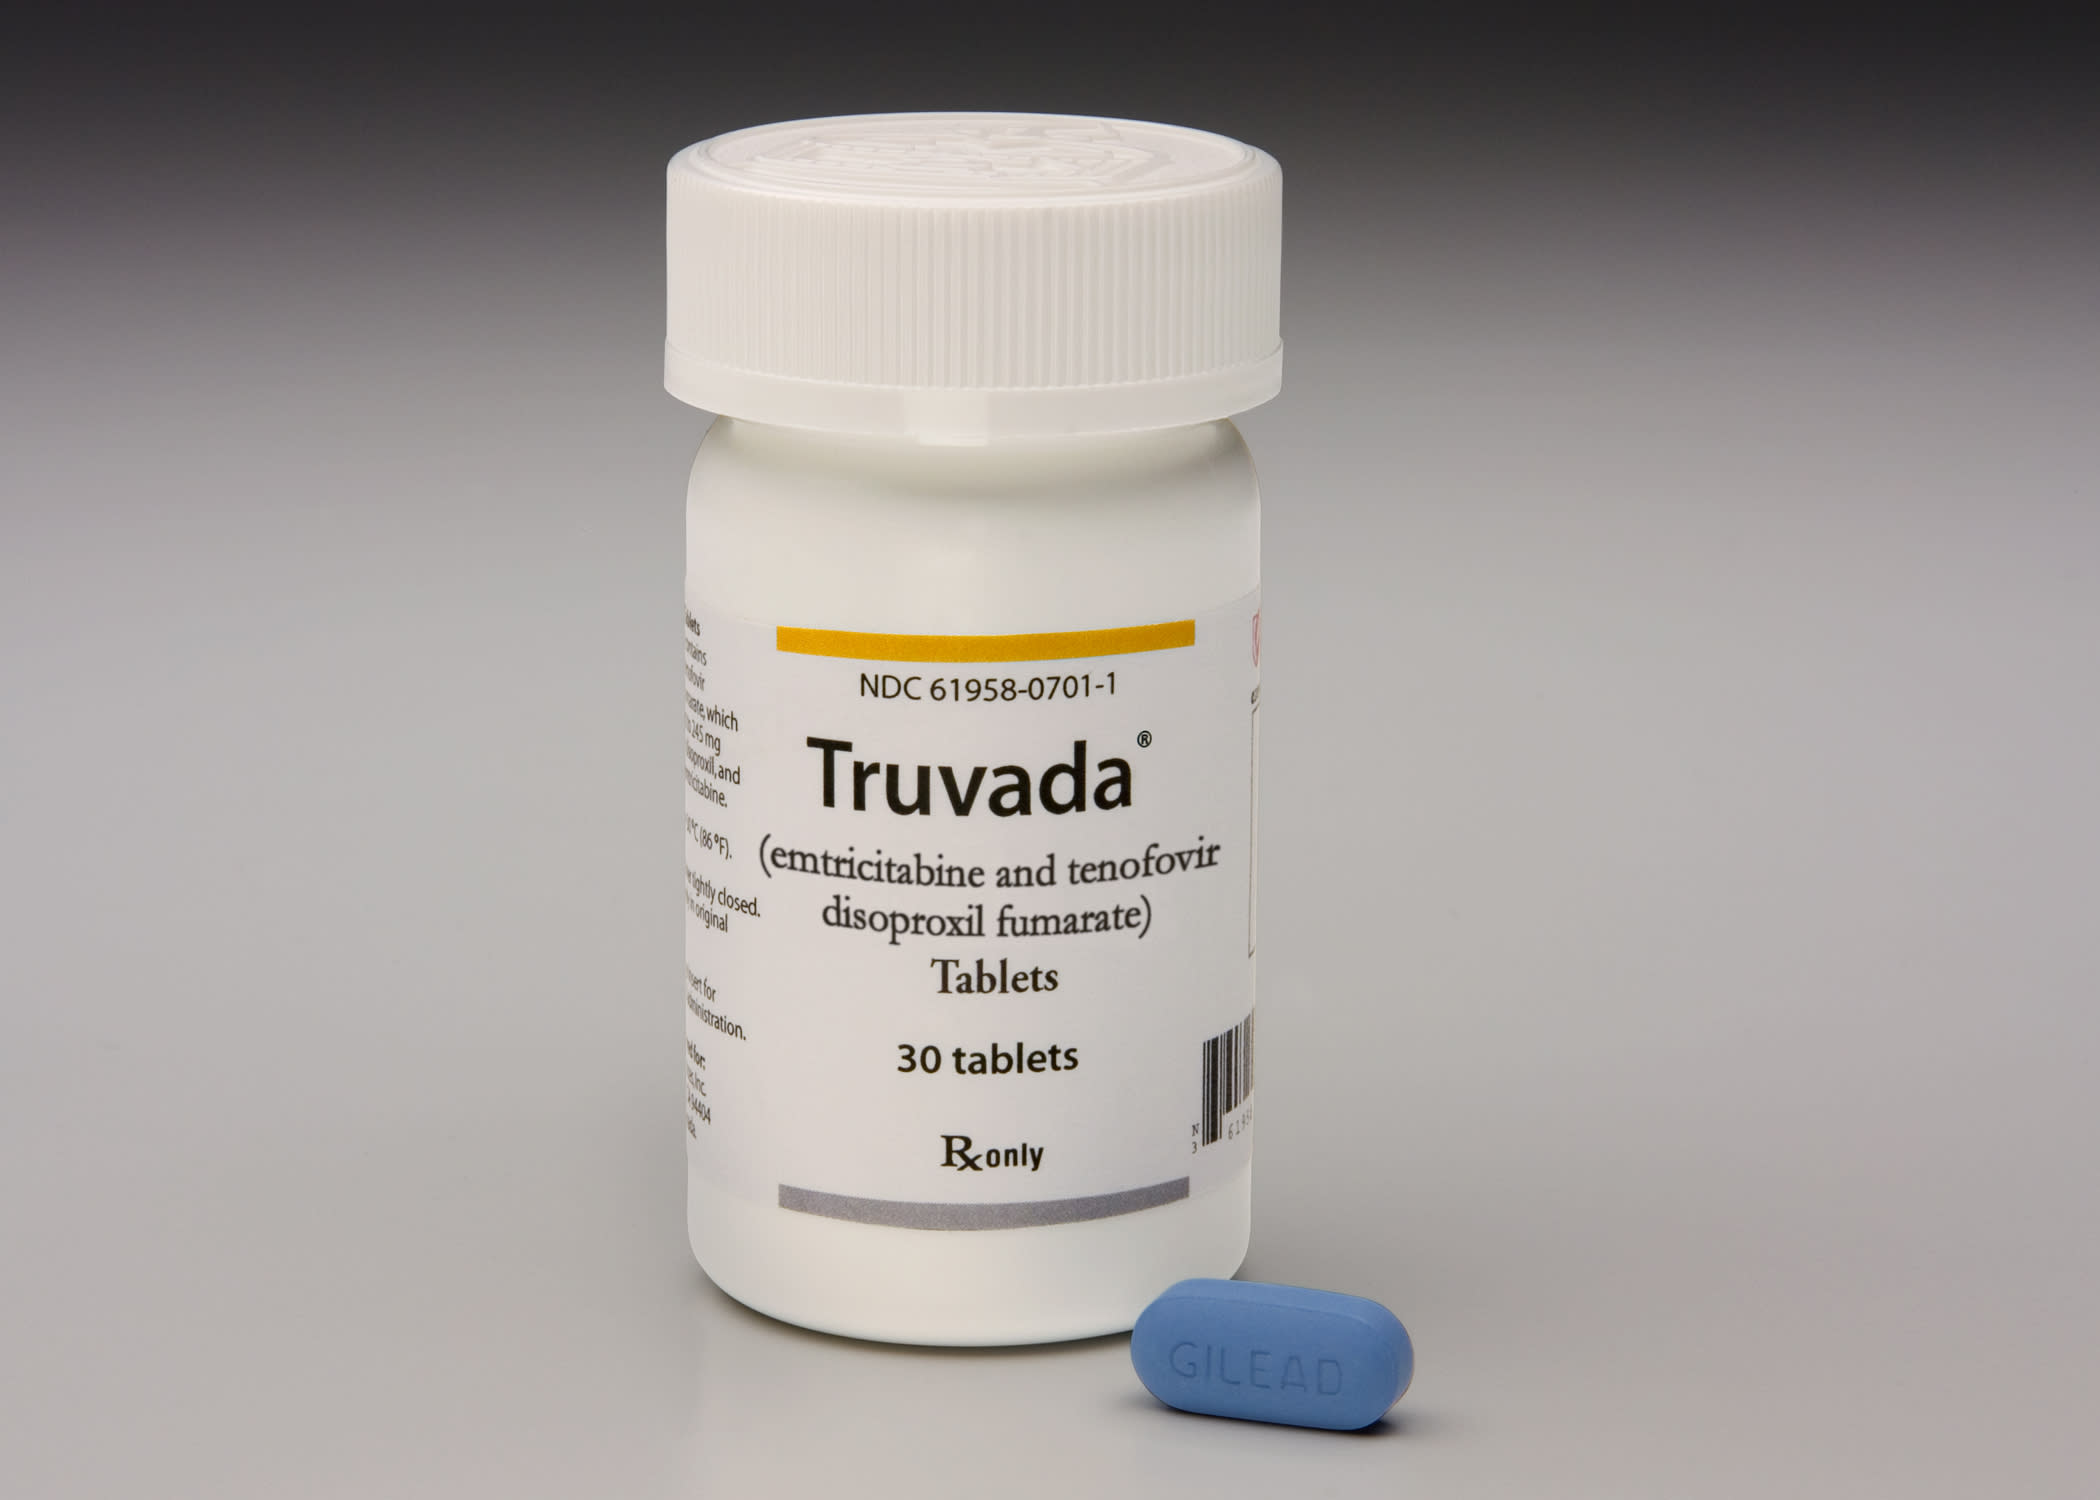 This photo provided by Gilead Sciences shows Truvada. A panel of federal health advisers votes today, Thursday, May 10, 2012, on whether to endorse the first drug shown to prevent HIV infection, potentially clearing the way for a landmark approval in the 30-year effort against the virus that causes AIDS. The Food and Drug Administration advisers will vote on whether Truvada should be approved as a preventative treatment for people who are at high risk of contracting HIV, such as gay and bisexual men. (AP Photo/Gilead Sciences)